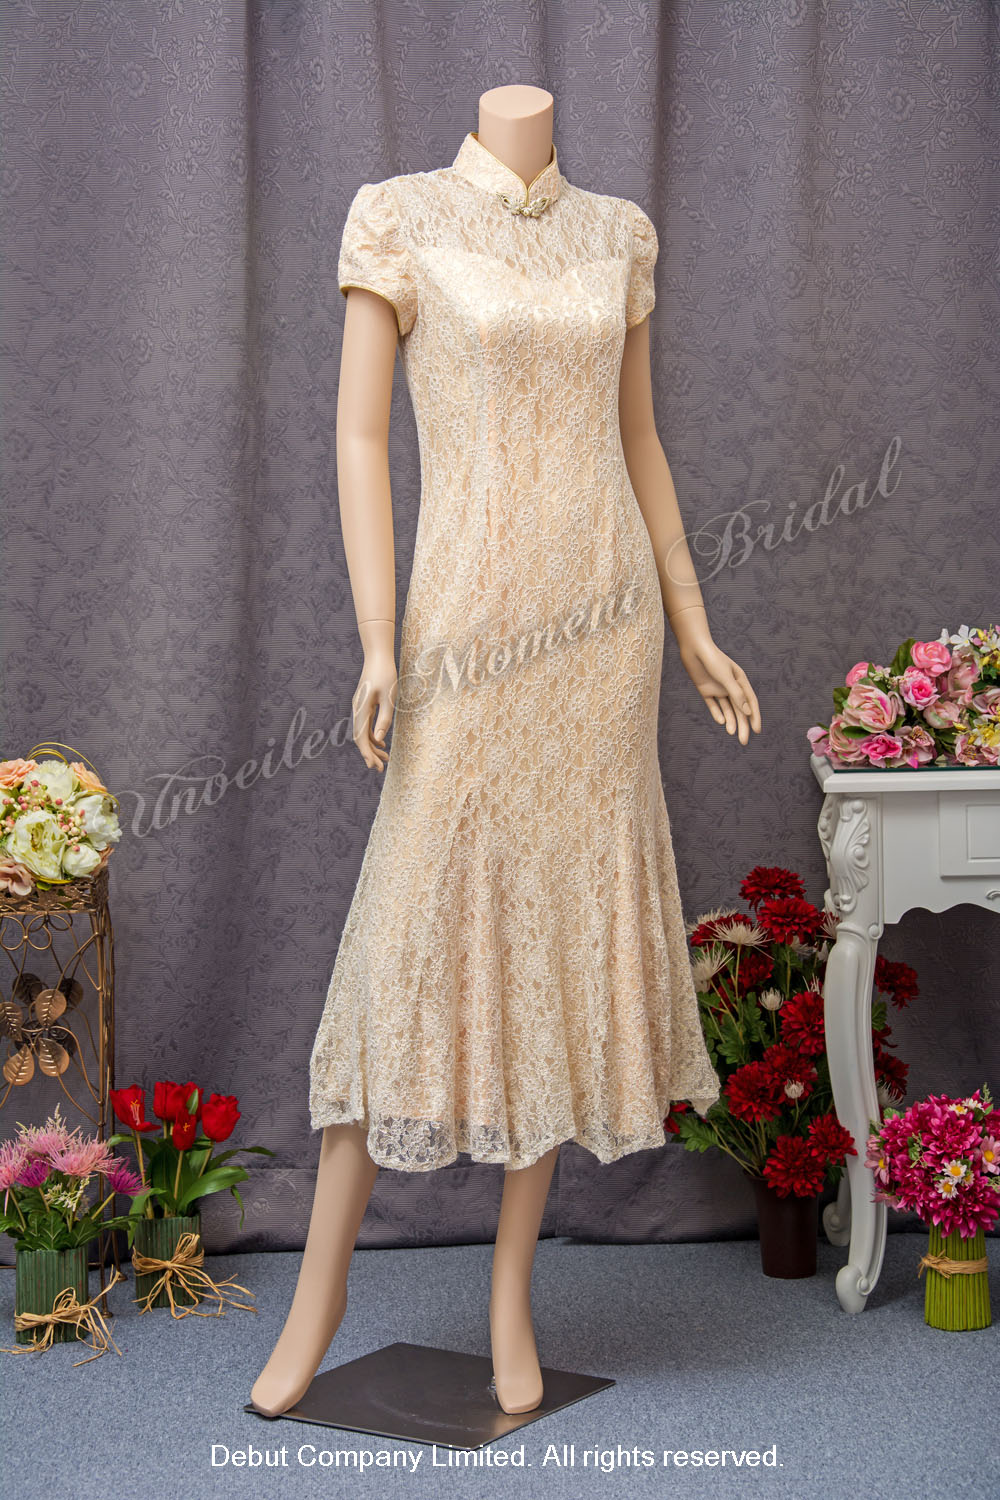 Light Gold Mother-of-the-Bride QiPao with short sleeves 金色短袖媽咪旗袍